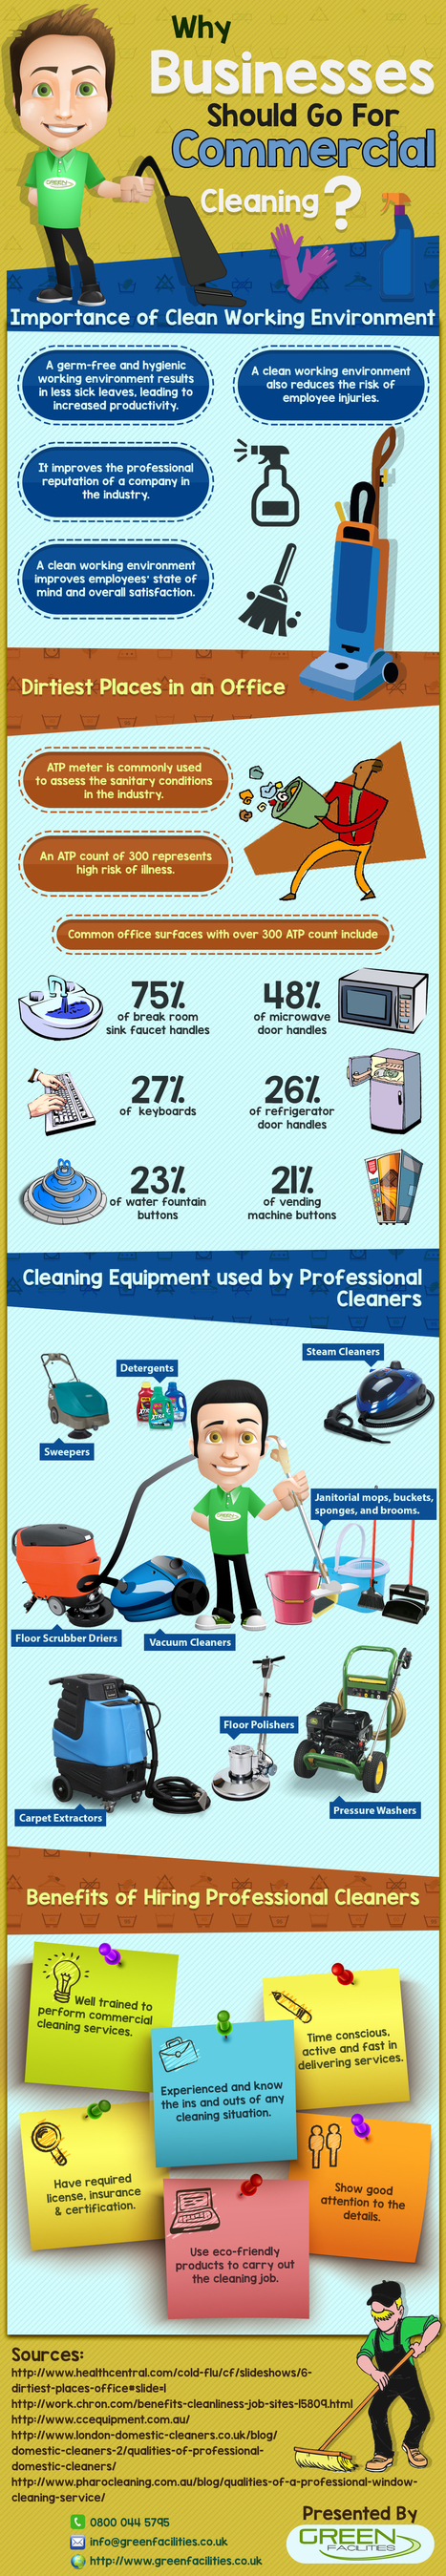 Why businesses should hire commercial cleaning companies? | Infographic | Scoop.it